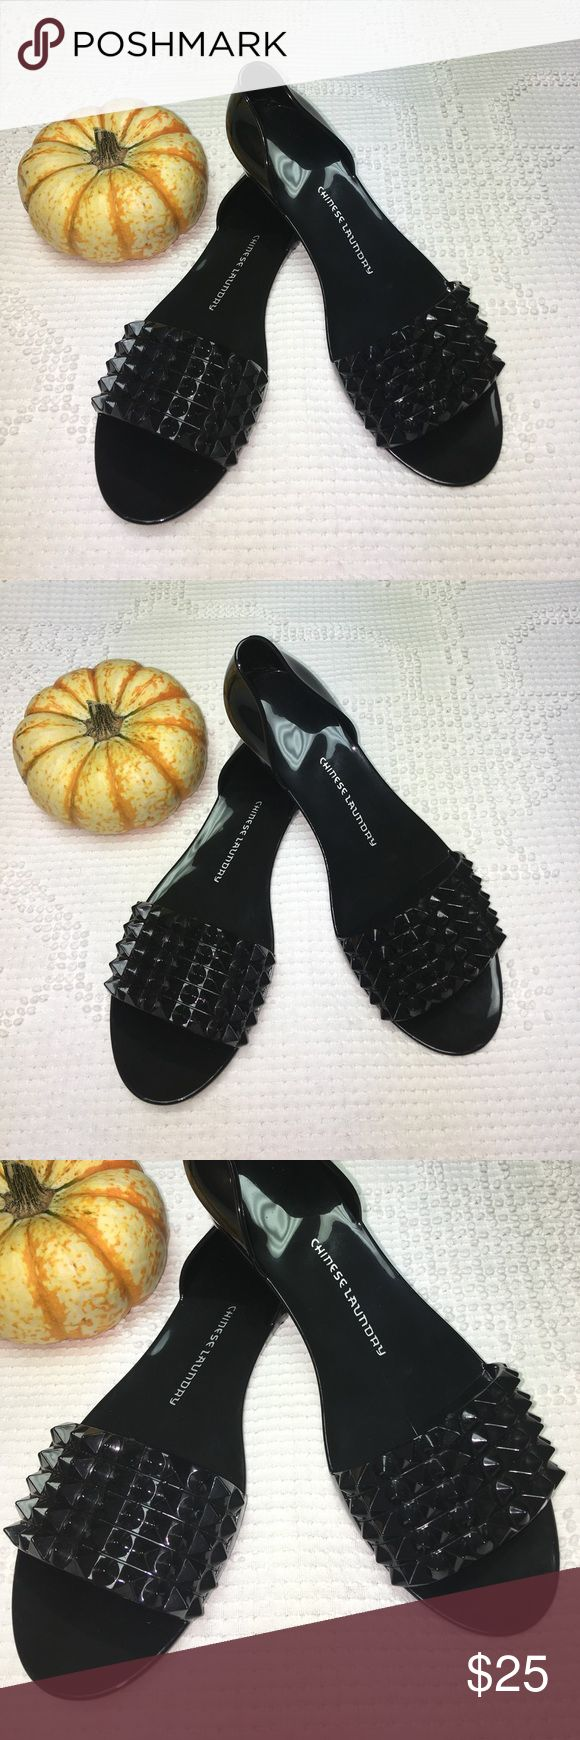 Chinese Laundry Black Rubber Studded Flats Chinese Laundry Black Rubber Studded Flats NWOT. NEVER WORN! Chinese Laundry Shoes